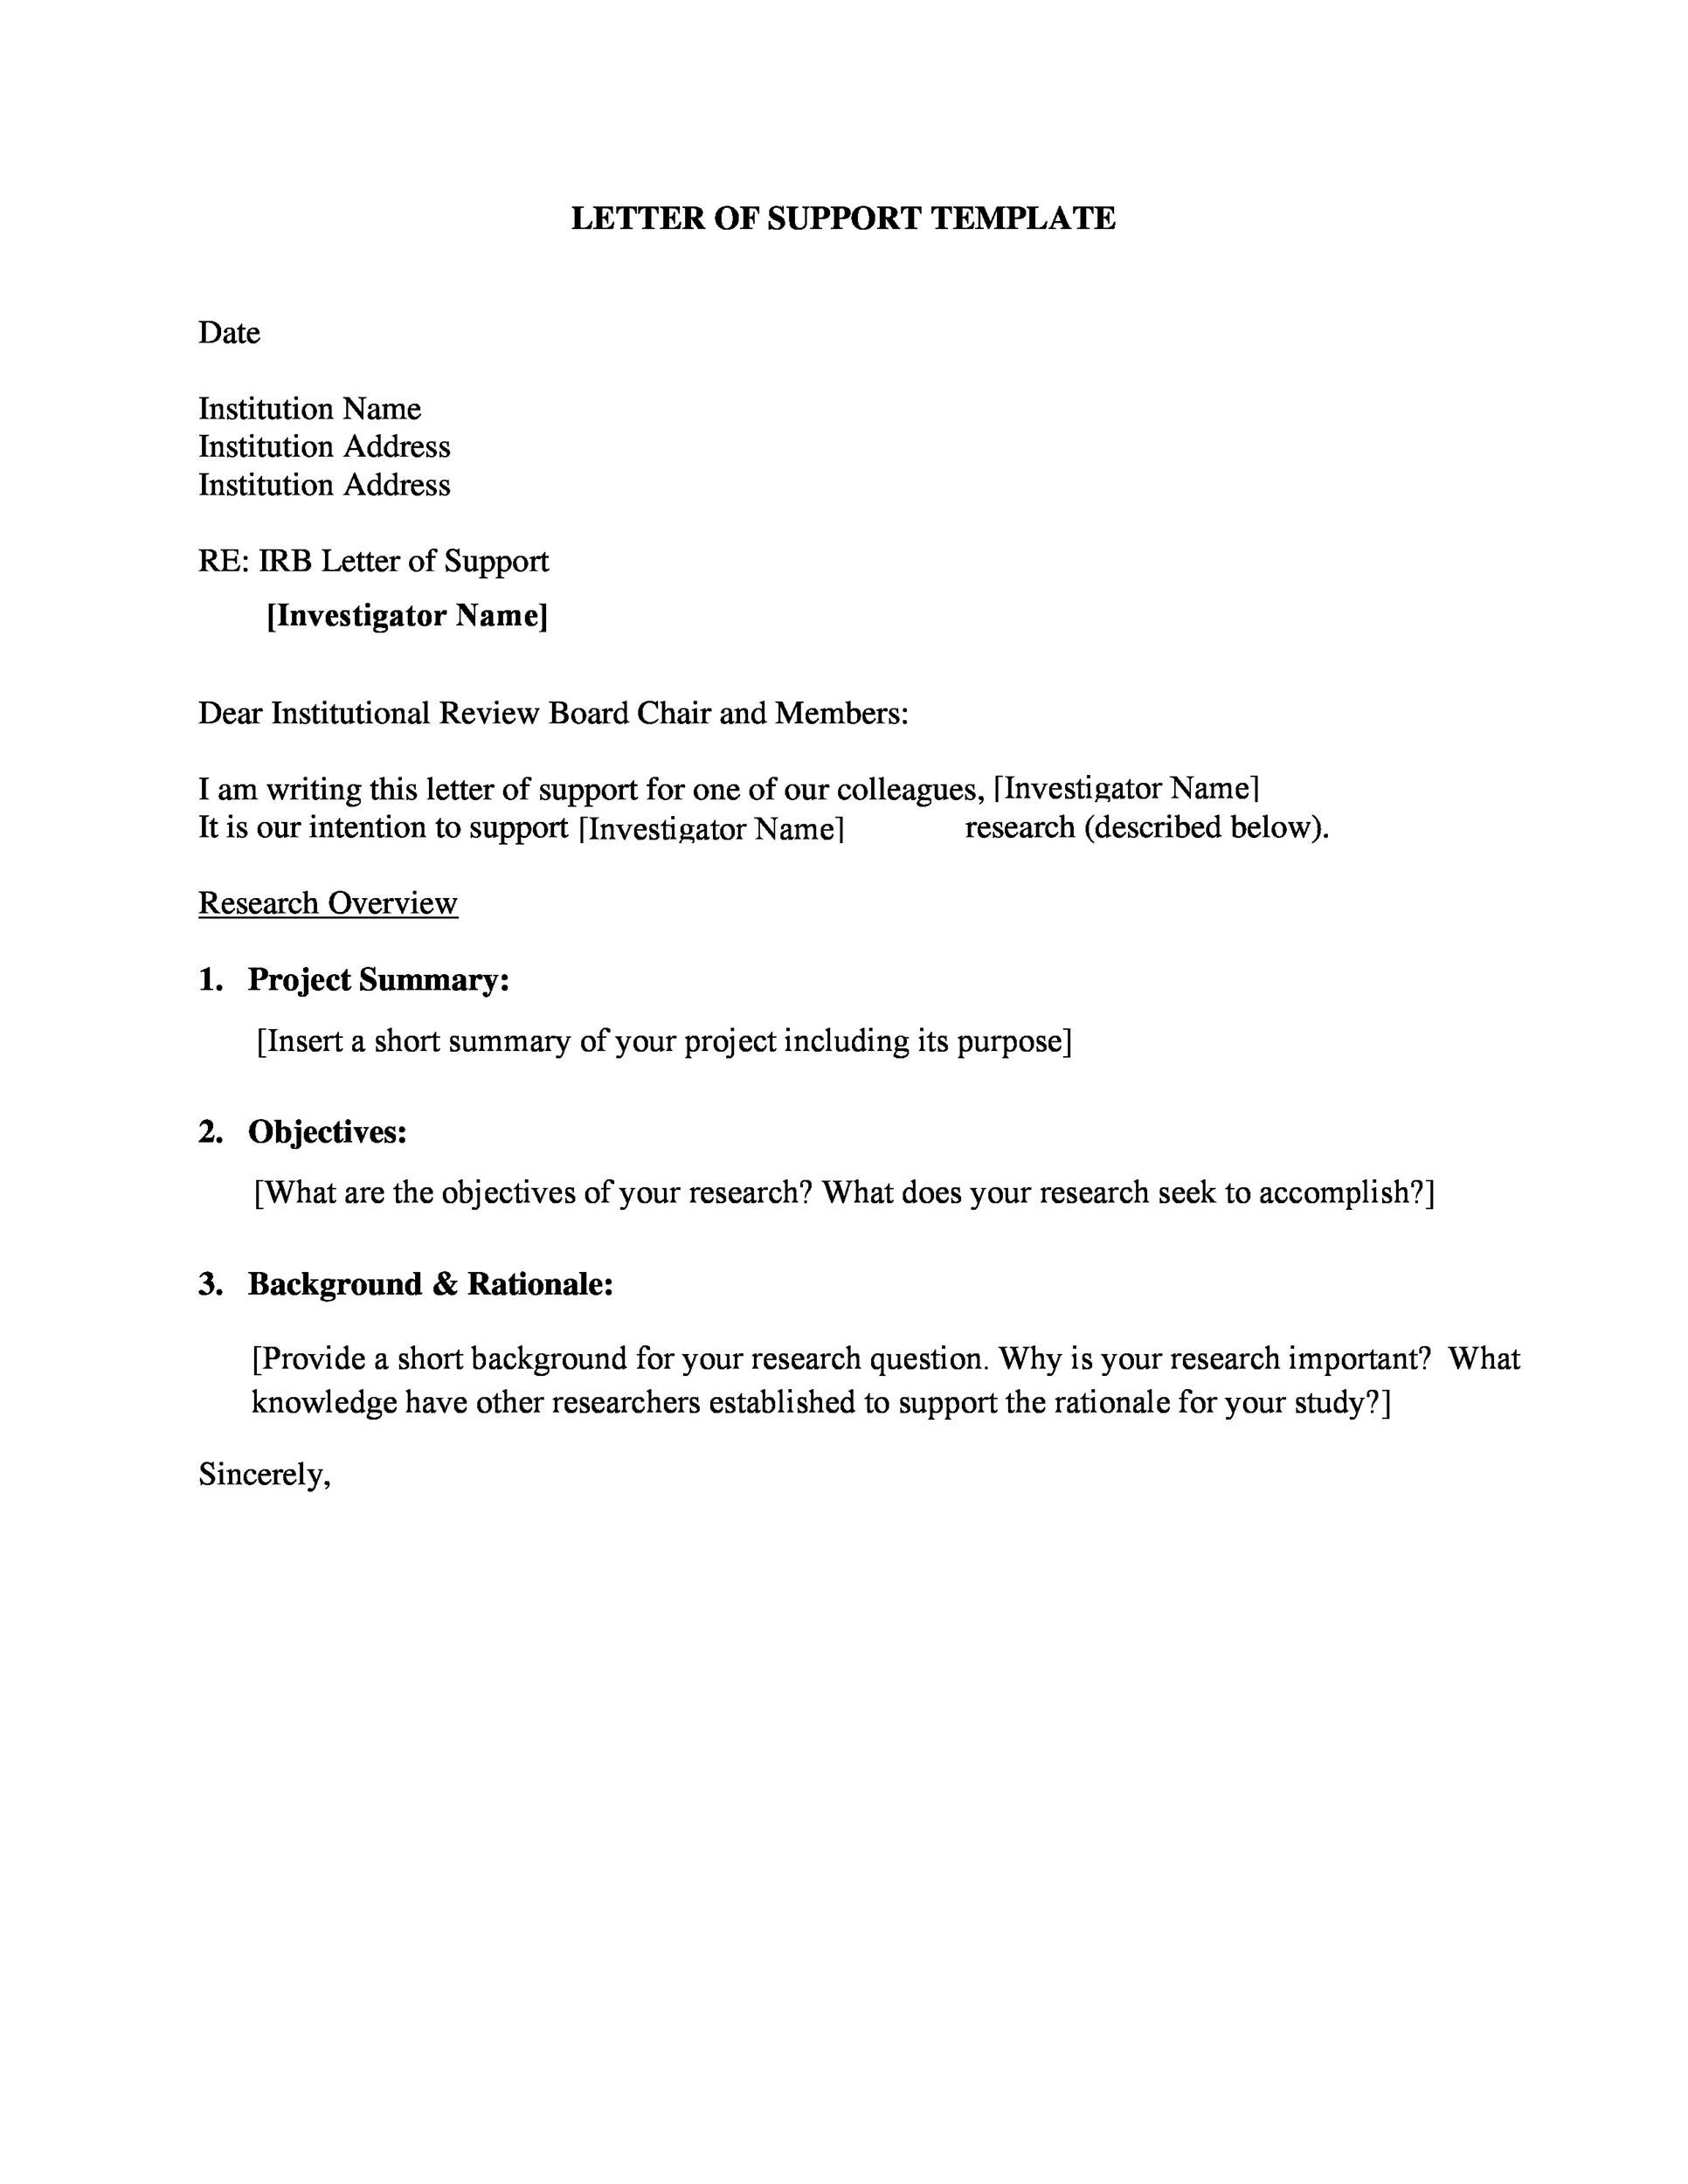 Proven Letter Of Support Templates Financial For Grant